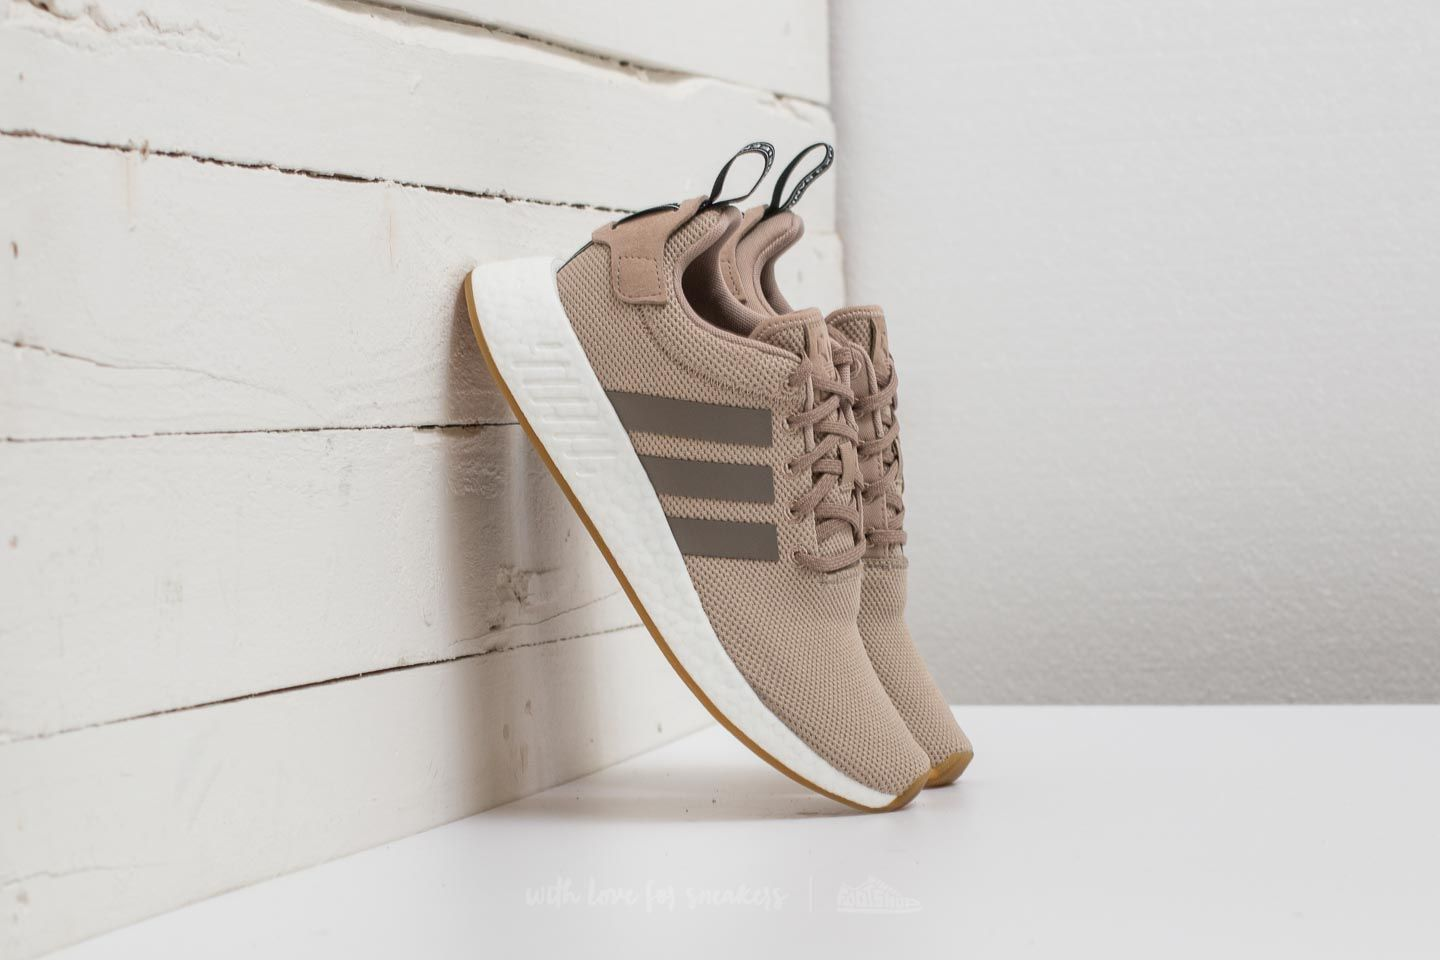 Nmd r2 Trace Khaki Brown Adidas BlackFootshop Simple Core UMVSzqp